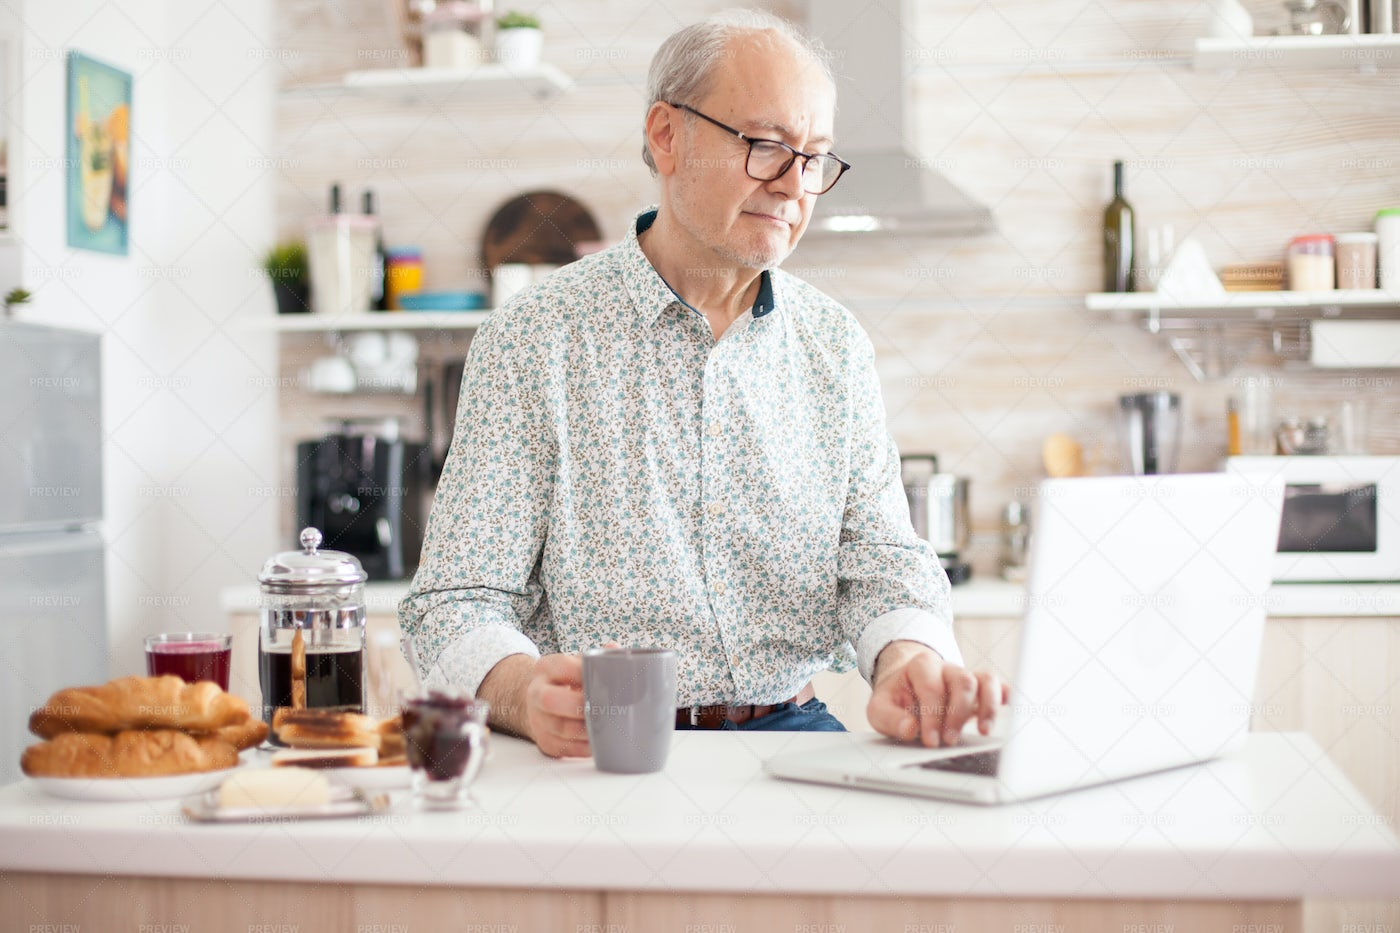 Grandfather Using Laptop In The Kitchen: Stock Photos